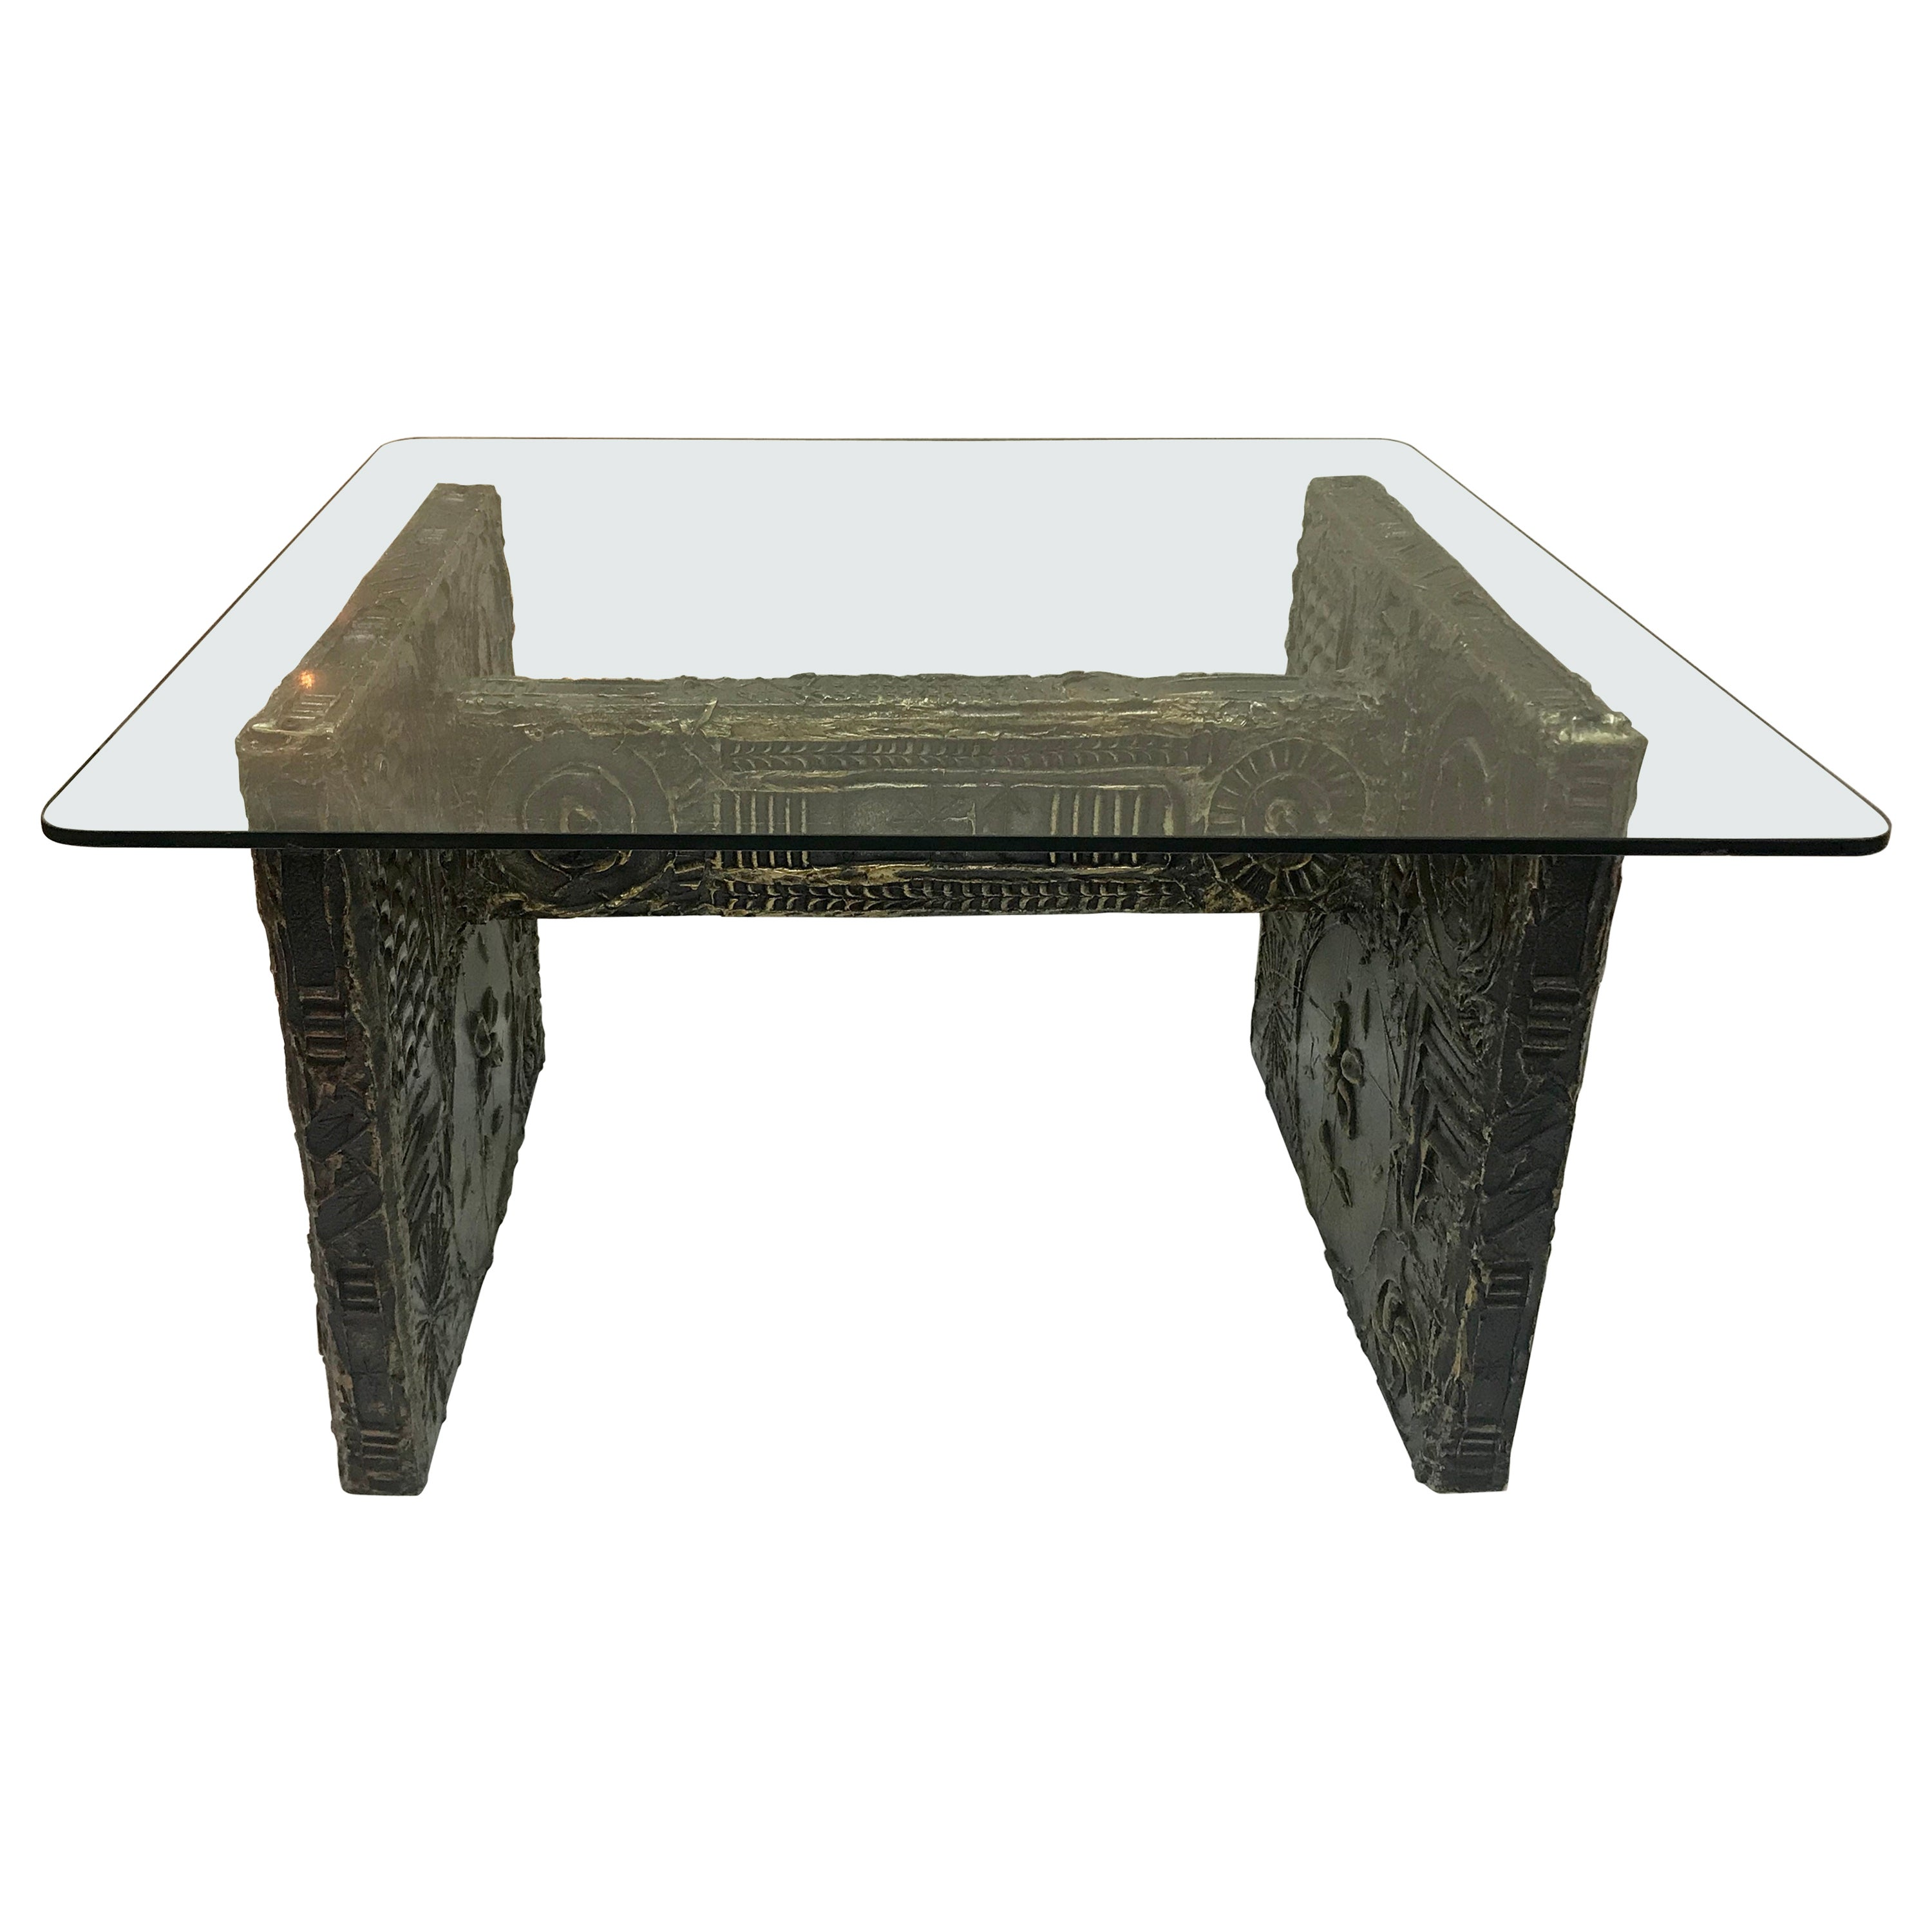 Brutalist Dining Table Desk, Adrian Pearsall